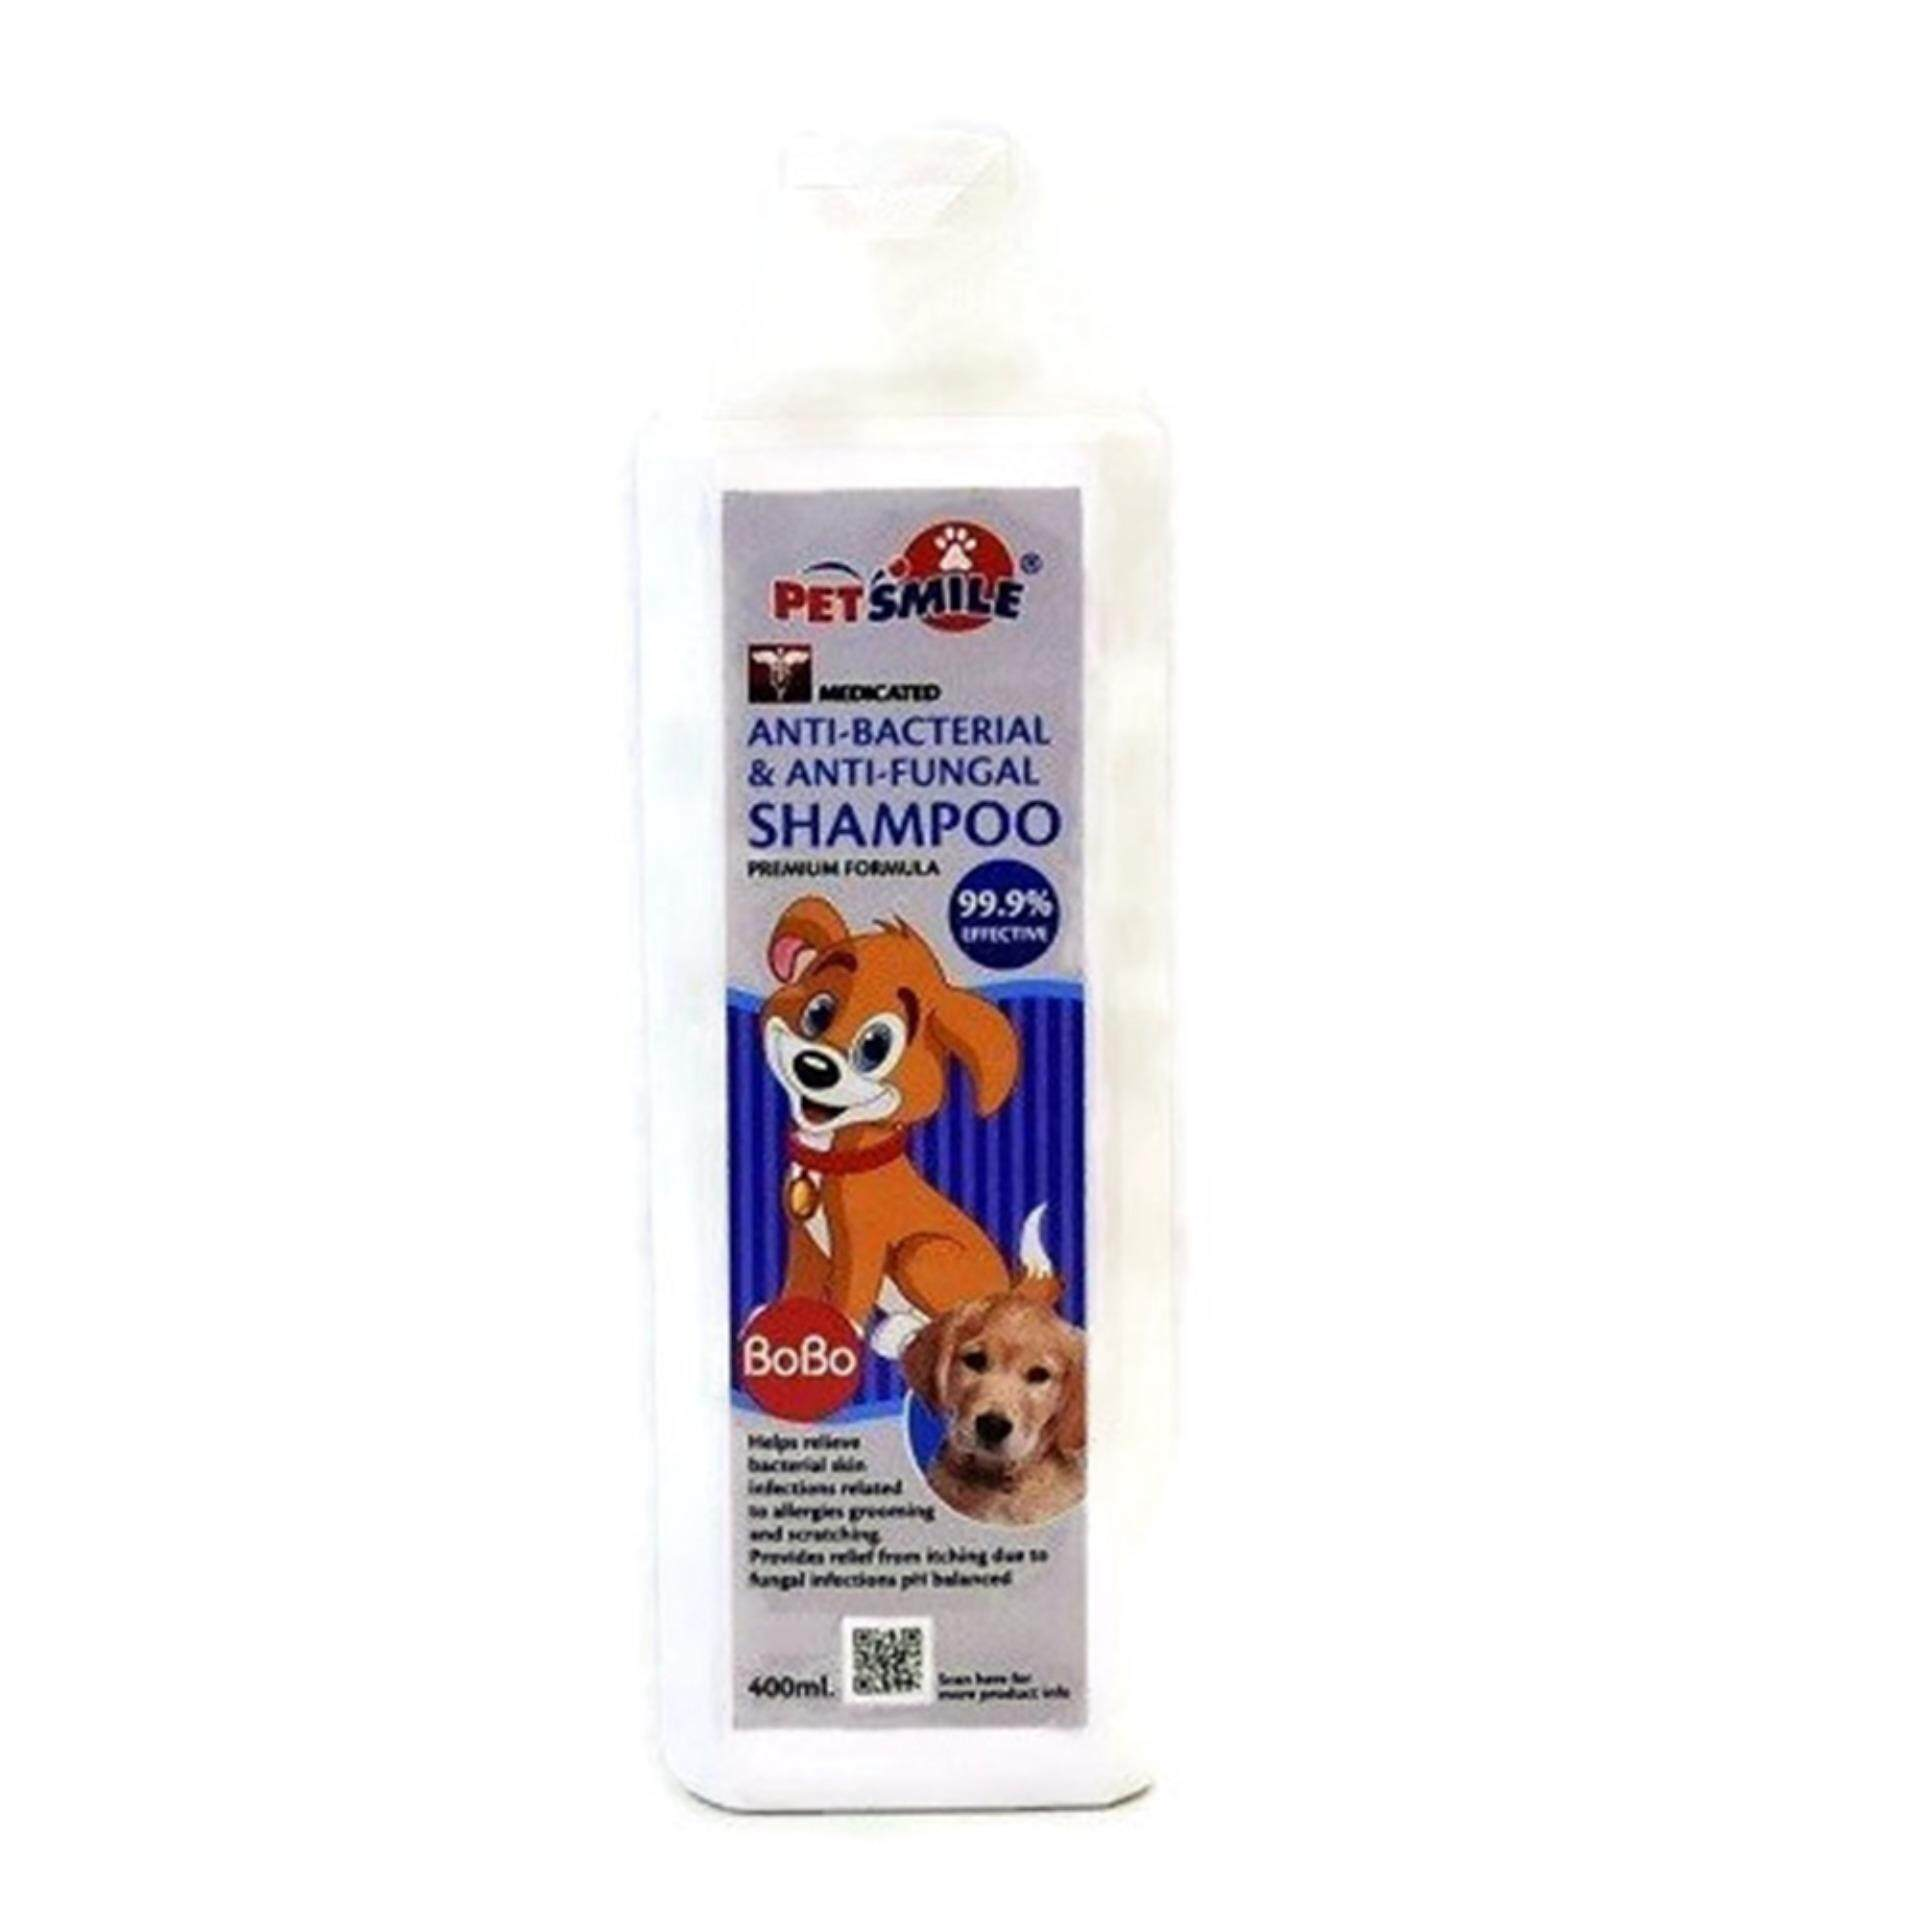 PET SMILE BOBO ANTI-BACTERIA DOG SHAMPOO 400ML